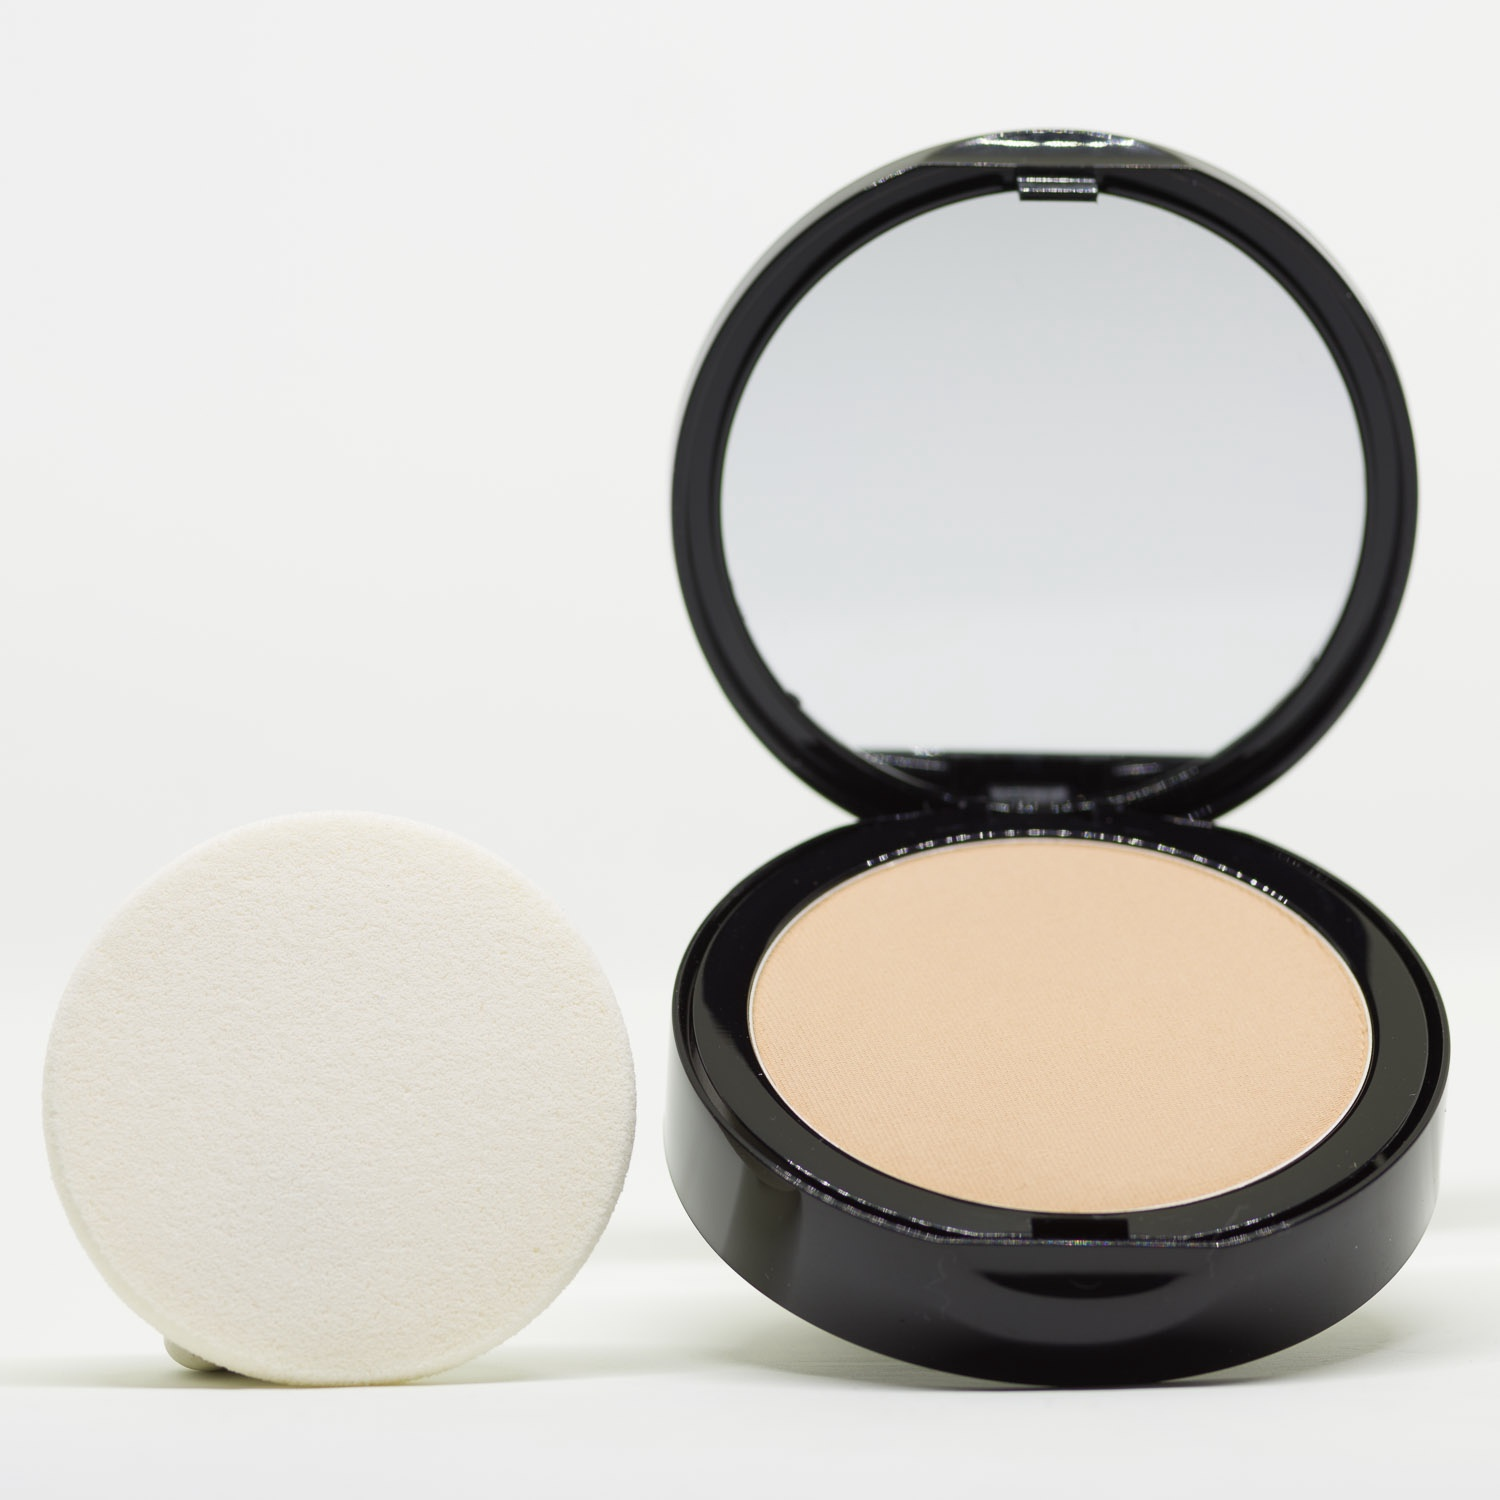 PC3 Warm Yellow Pressed Powder Mineral Foundation